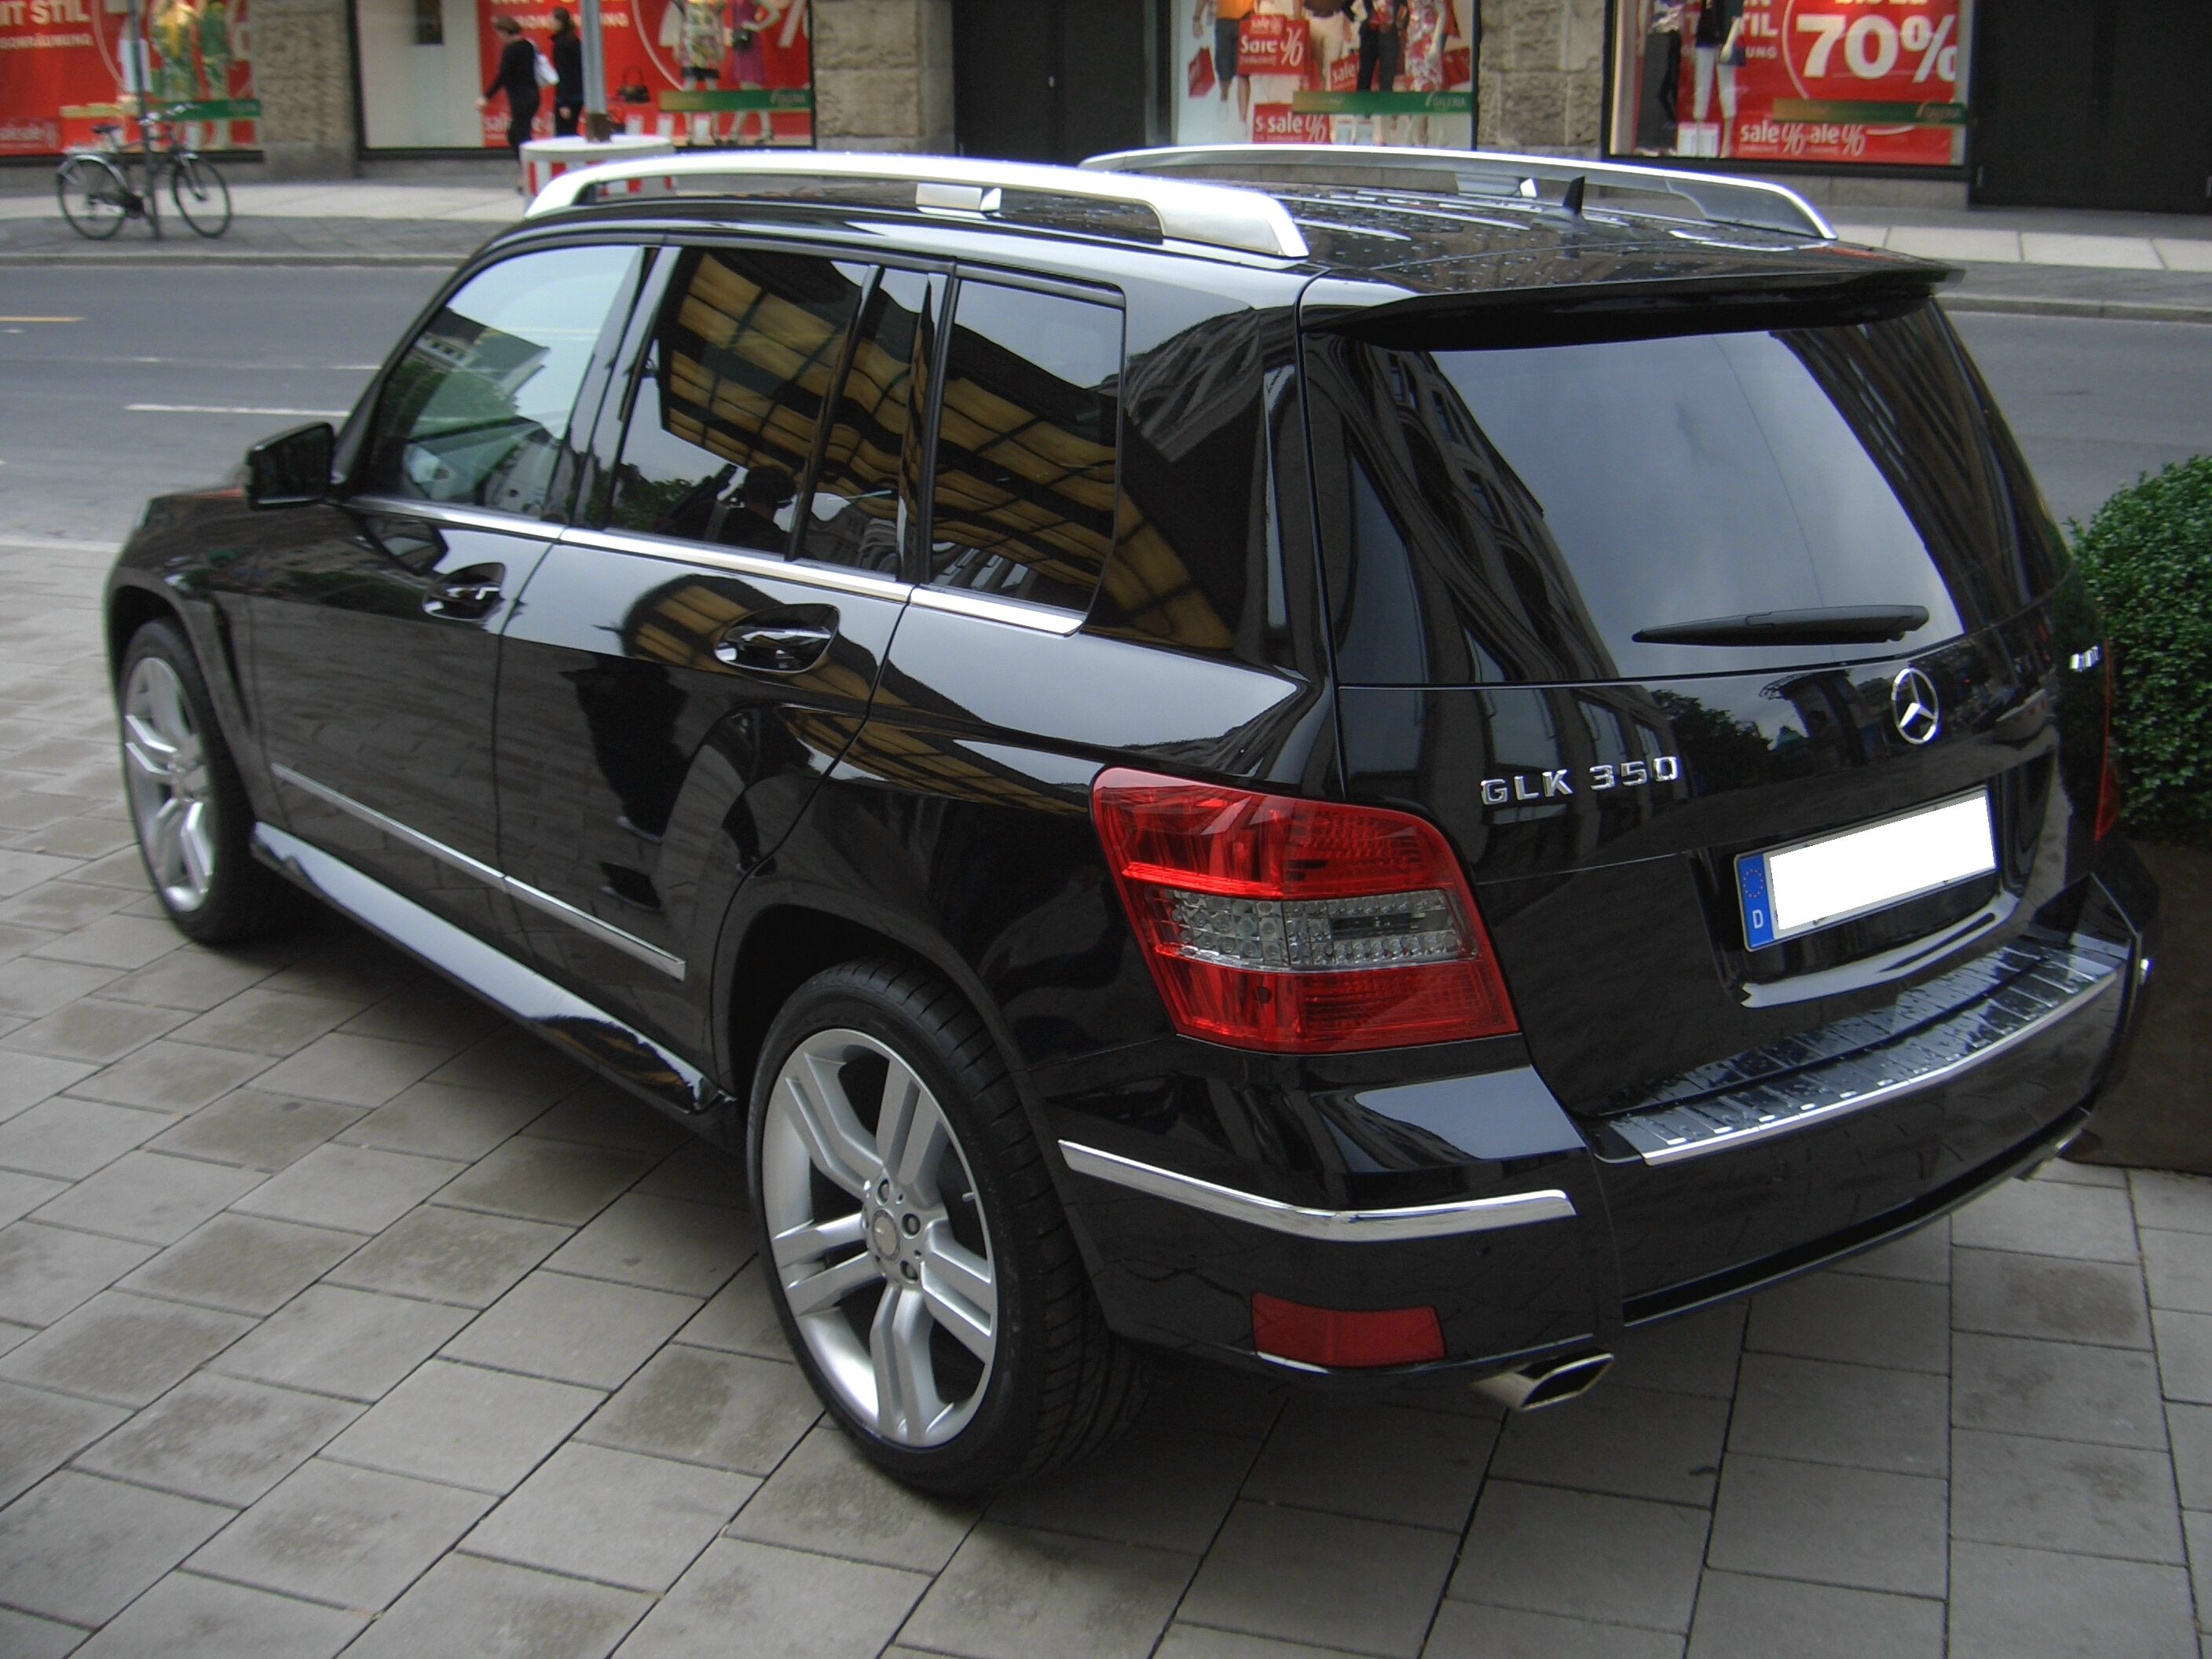 mercedes-benz glk 350 4-matic-pic. 3